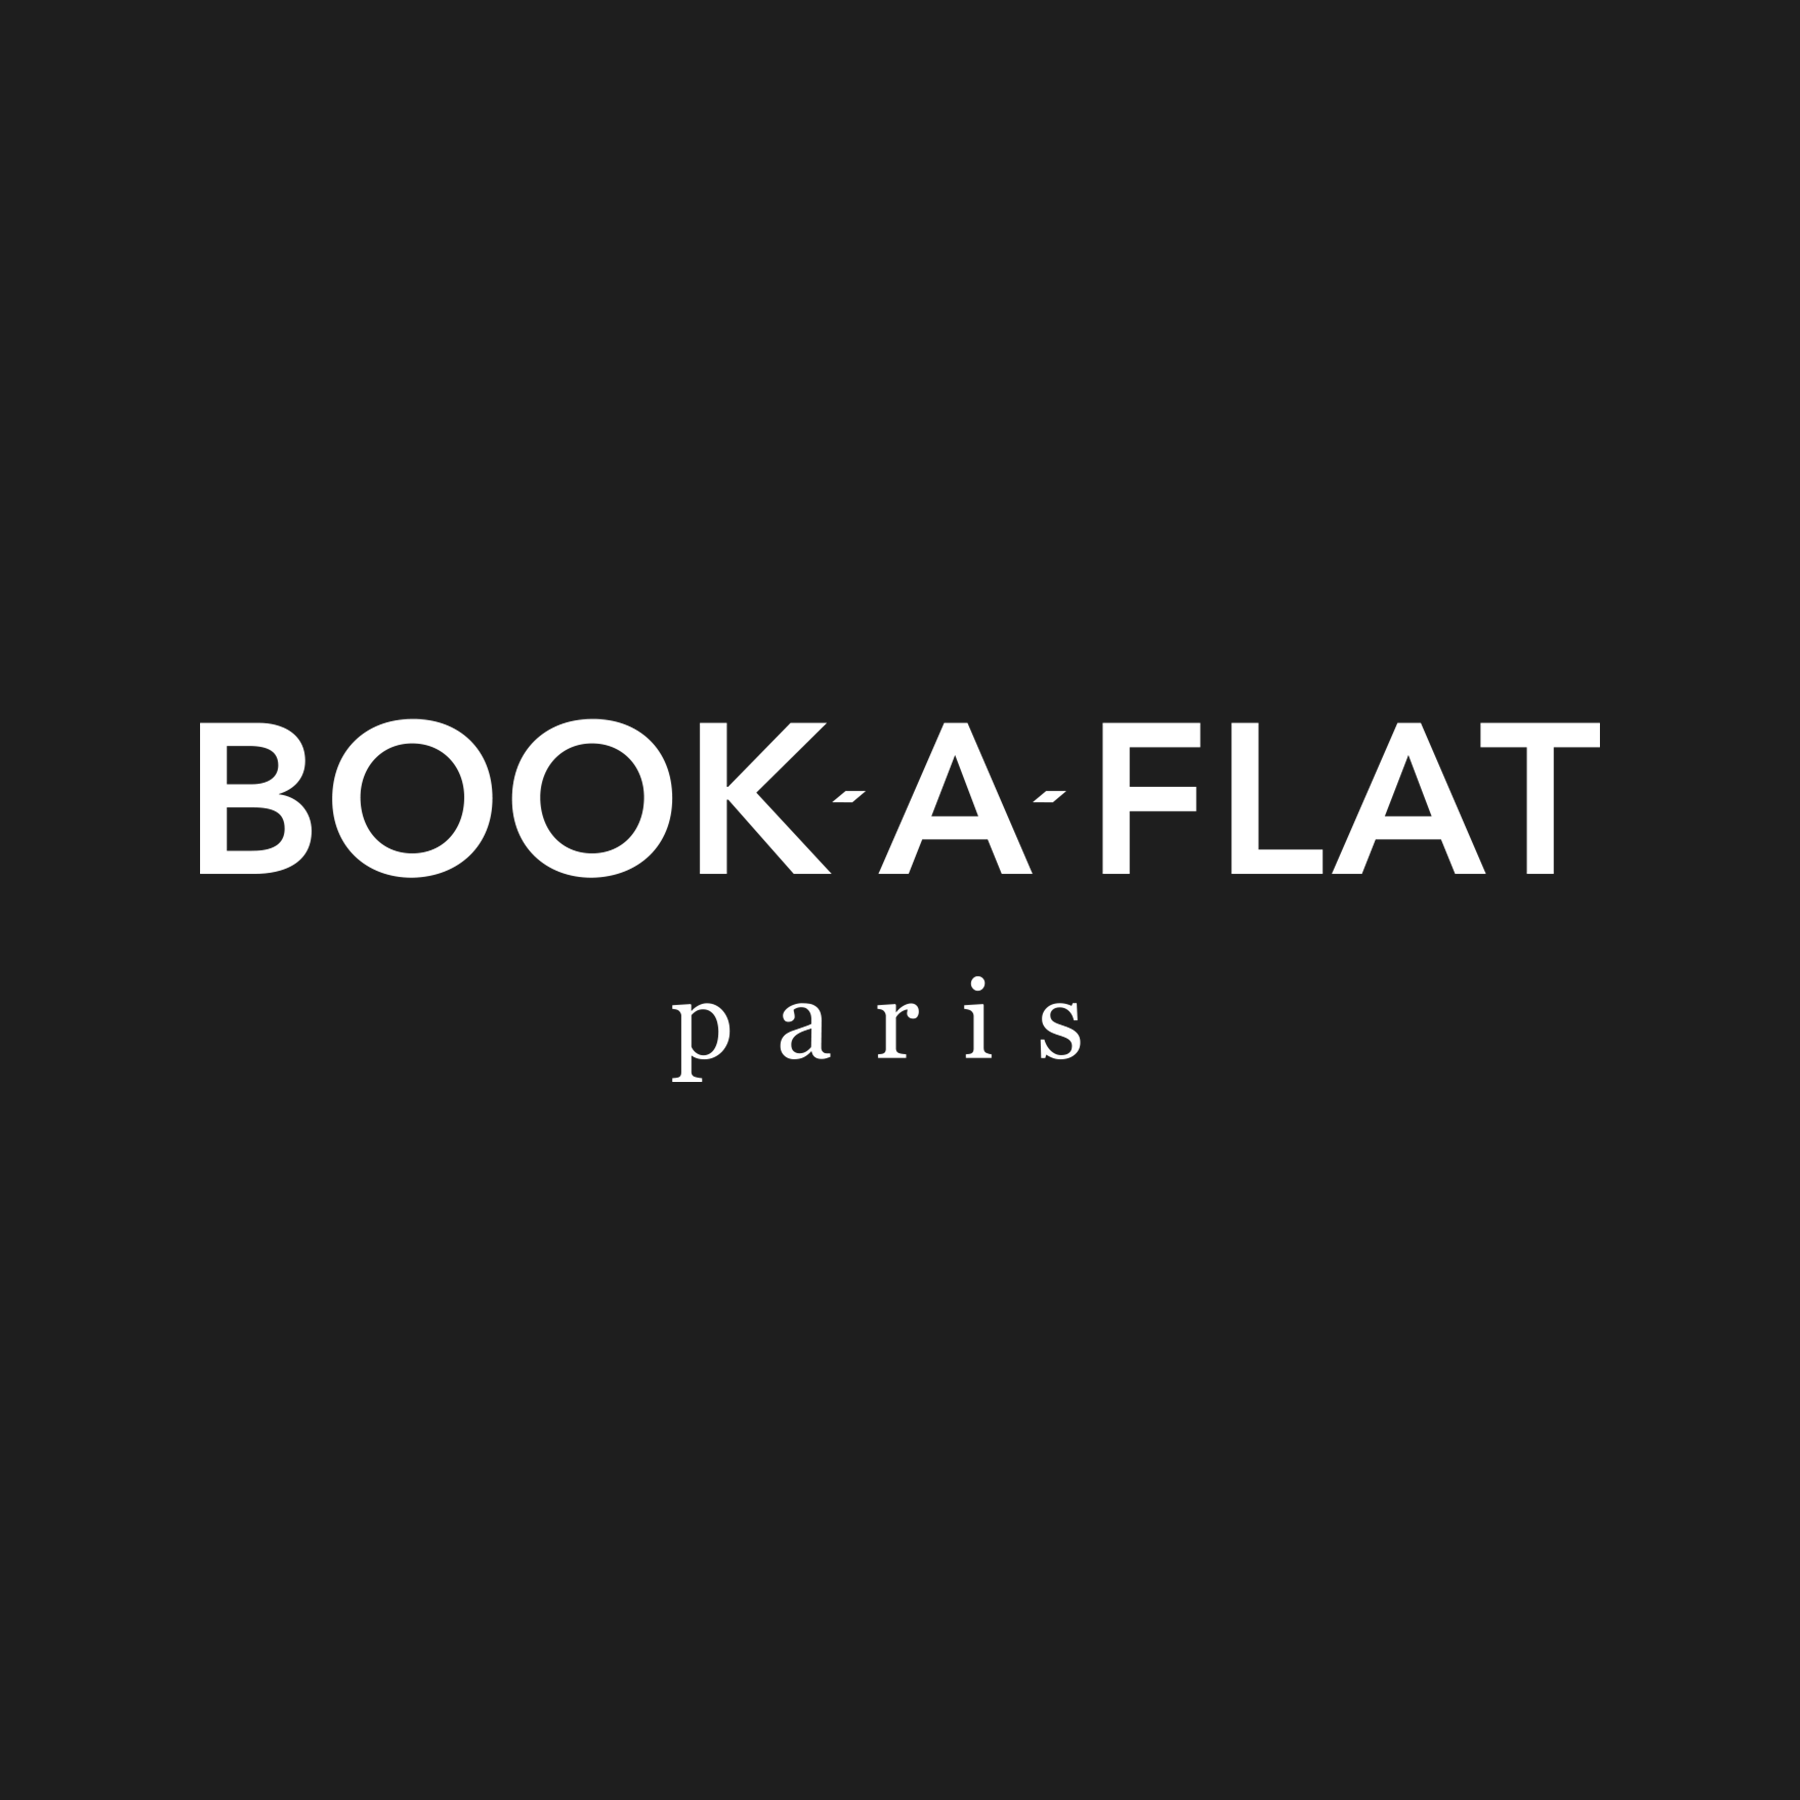 book a flat in paris bookaflat twitter. Black Bedroom Furniture Sets. Home Design Ideas